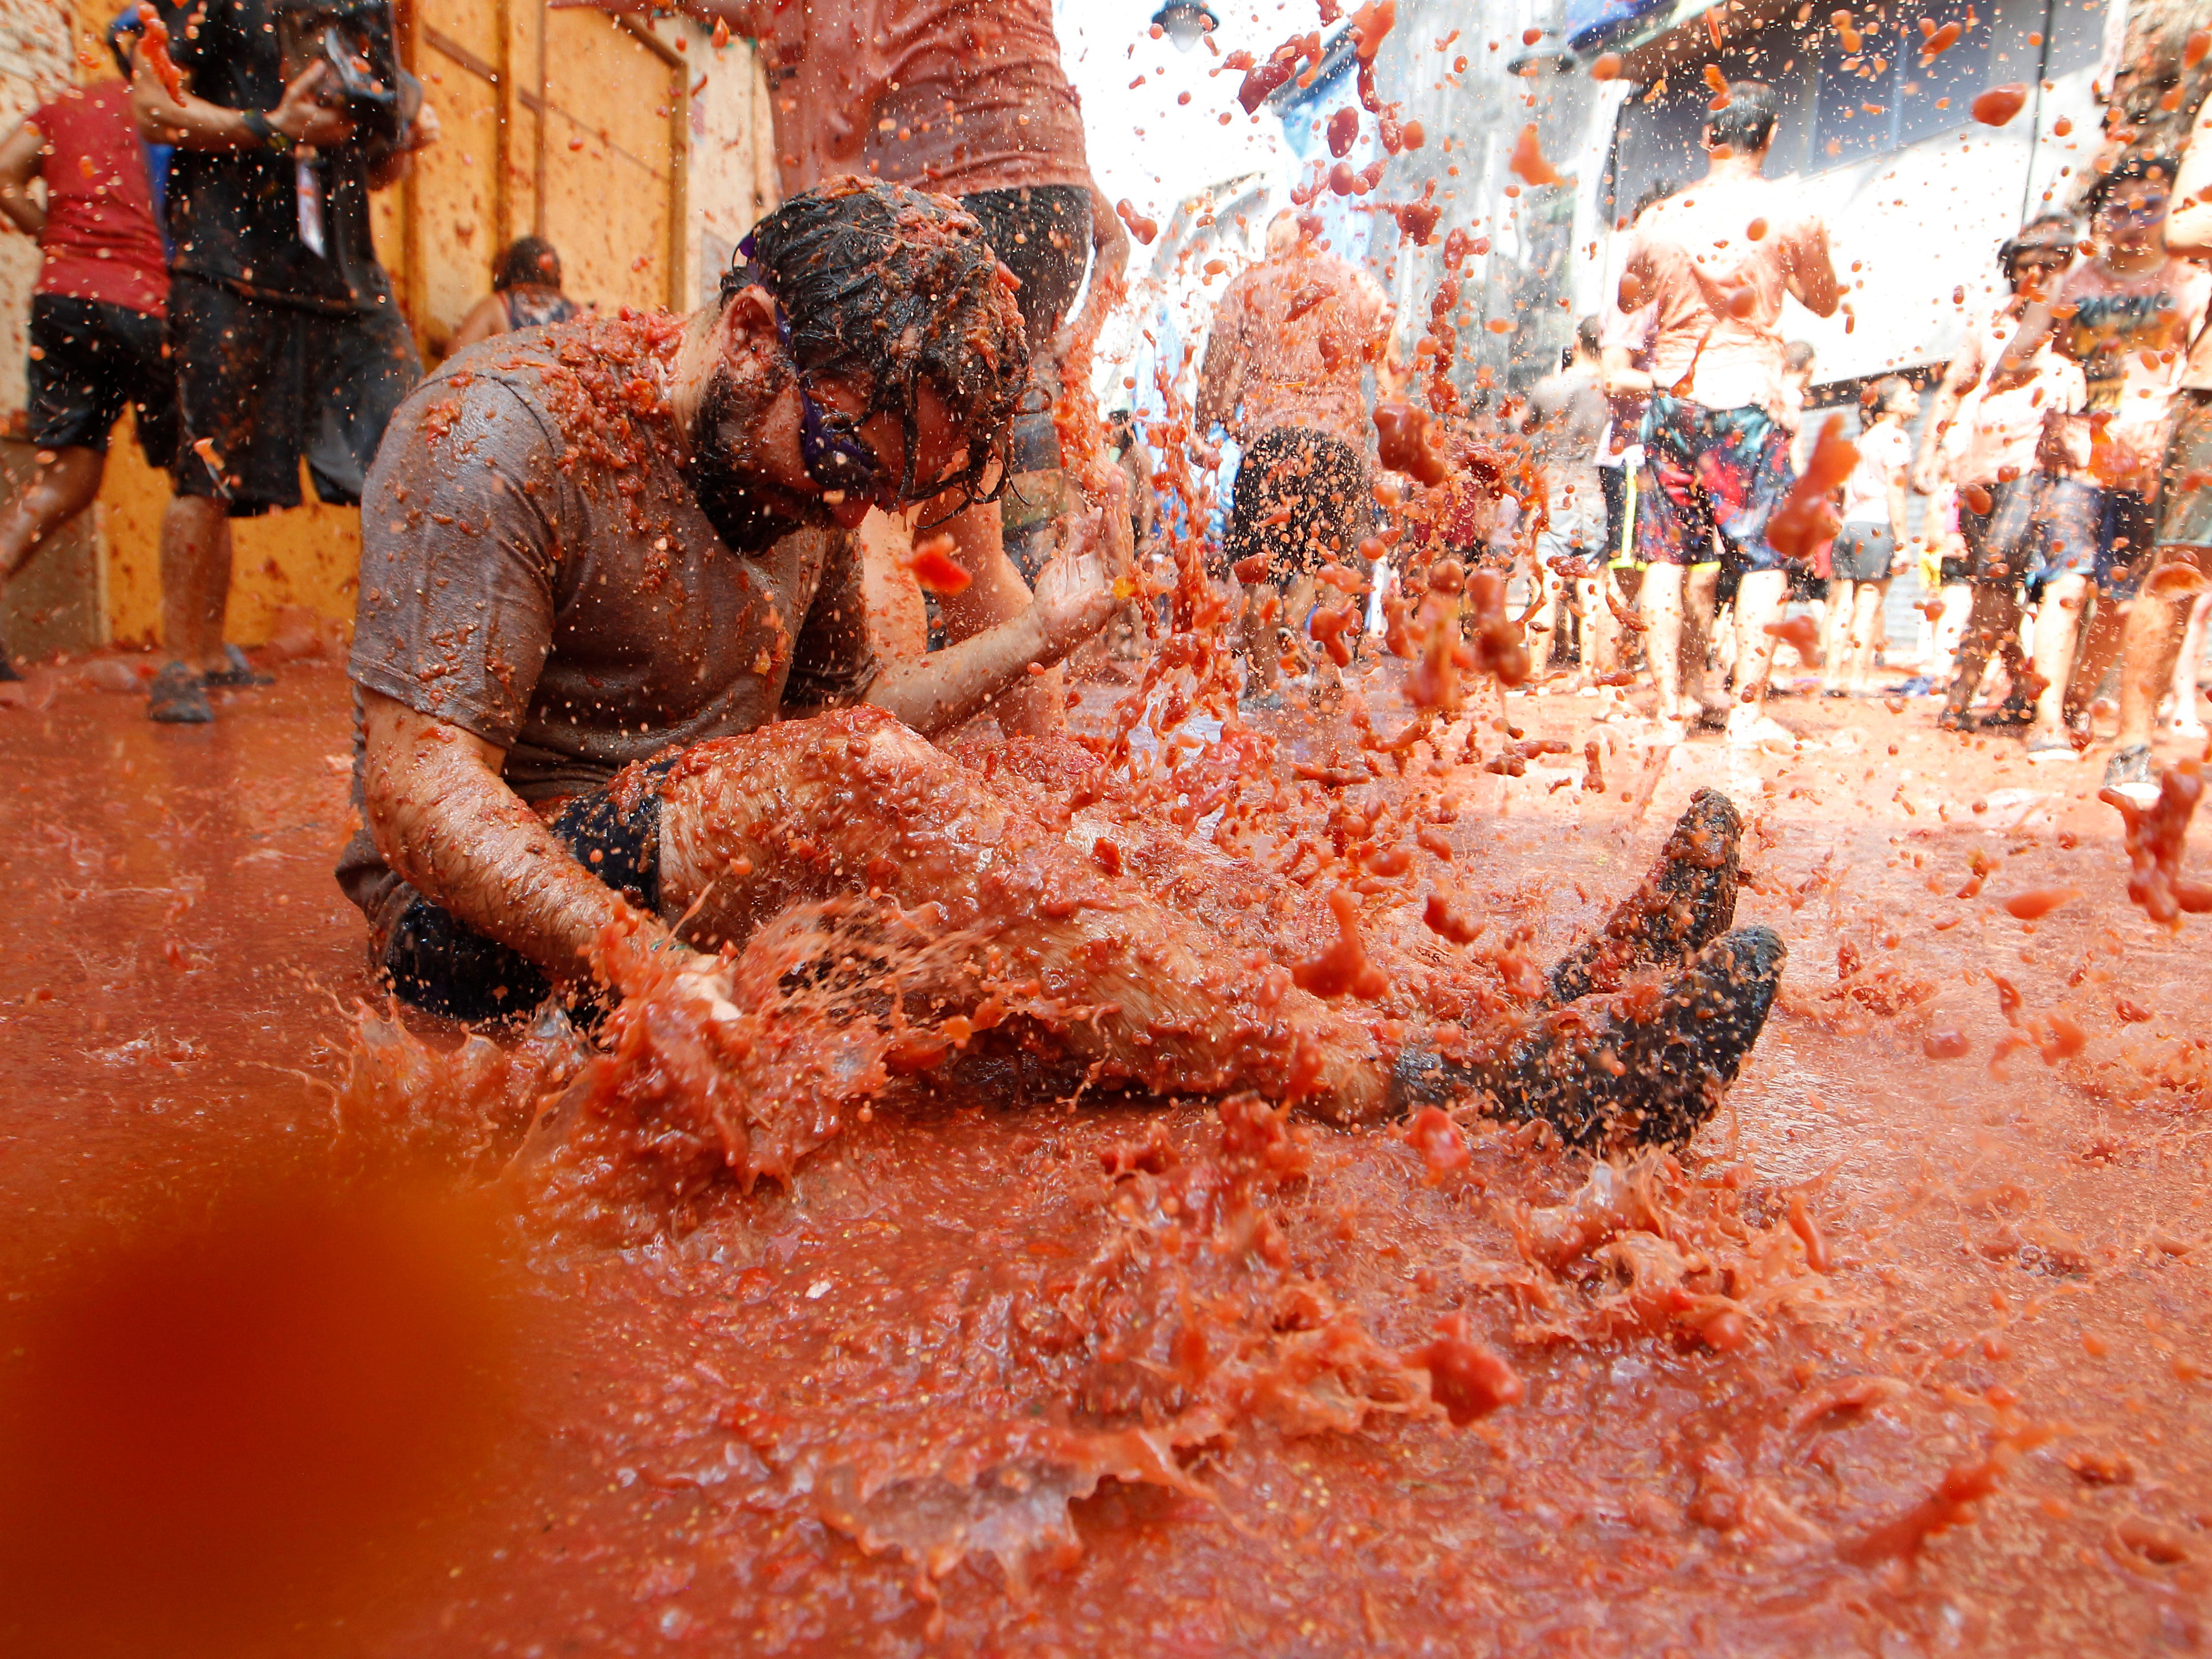 A participant endures being pelted by tomatoes during the annual Tomatina in Bunol, Spain, Aug. 29, 2018.